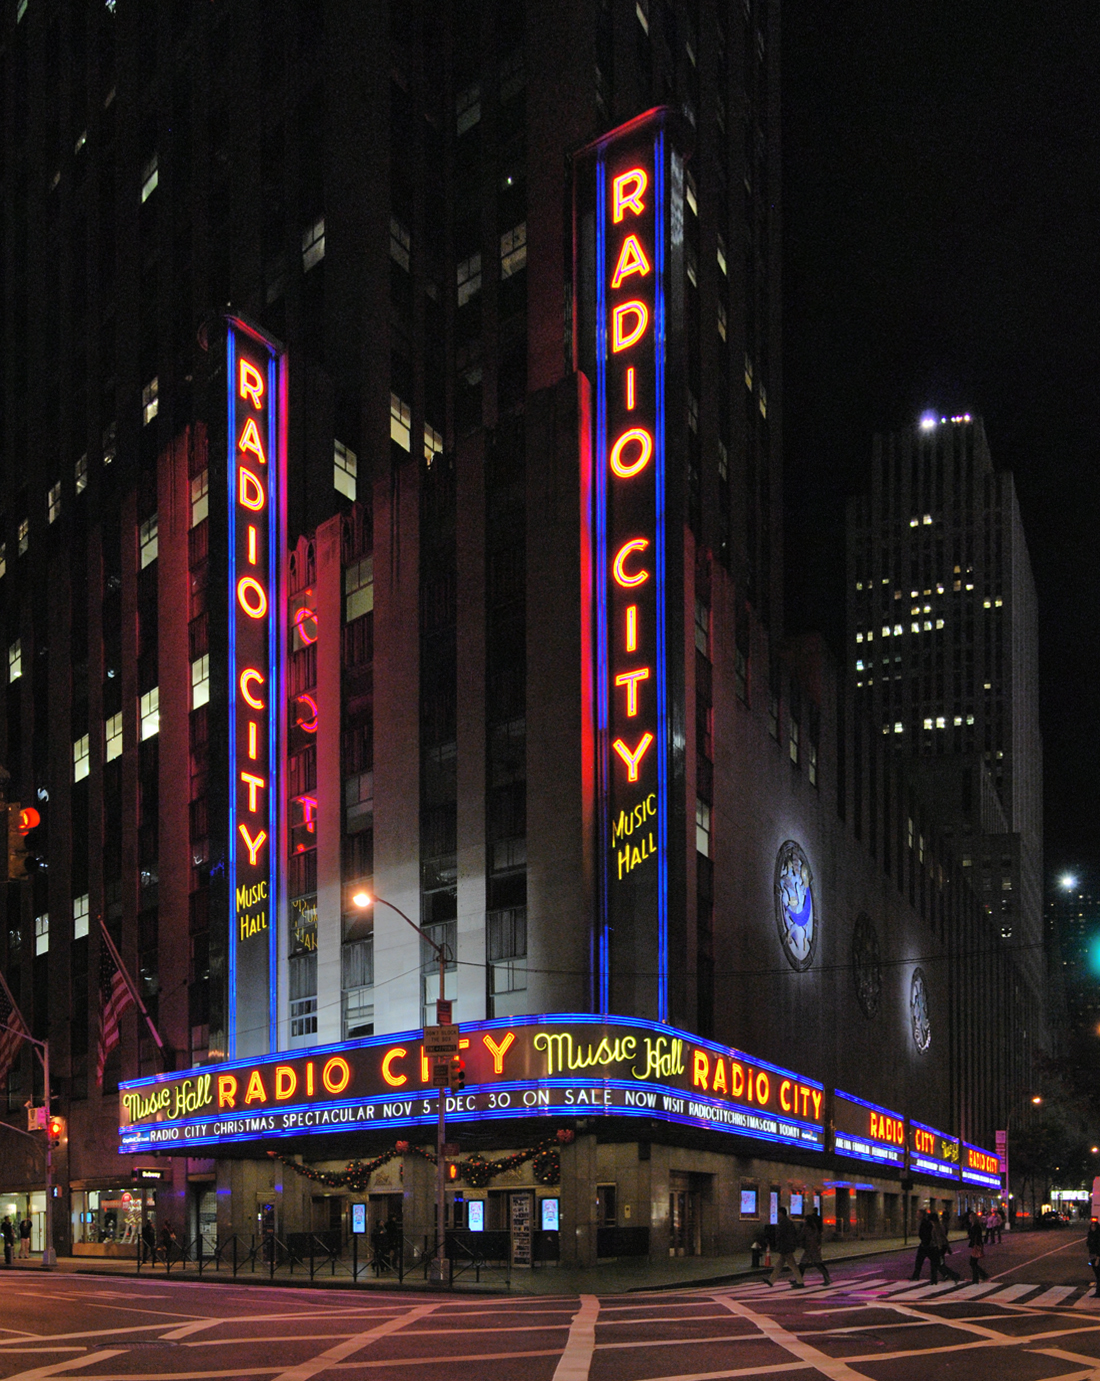 Radio city music hall wikipedia malvernweather Image collections